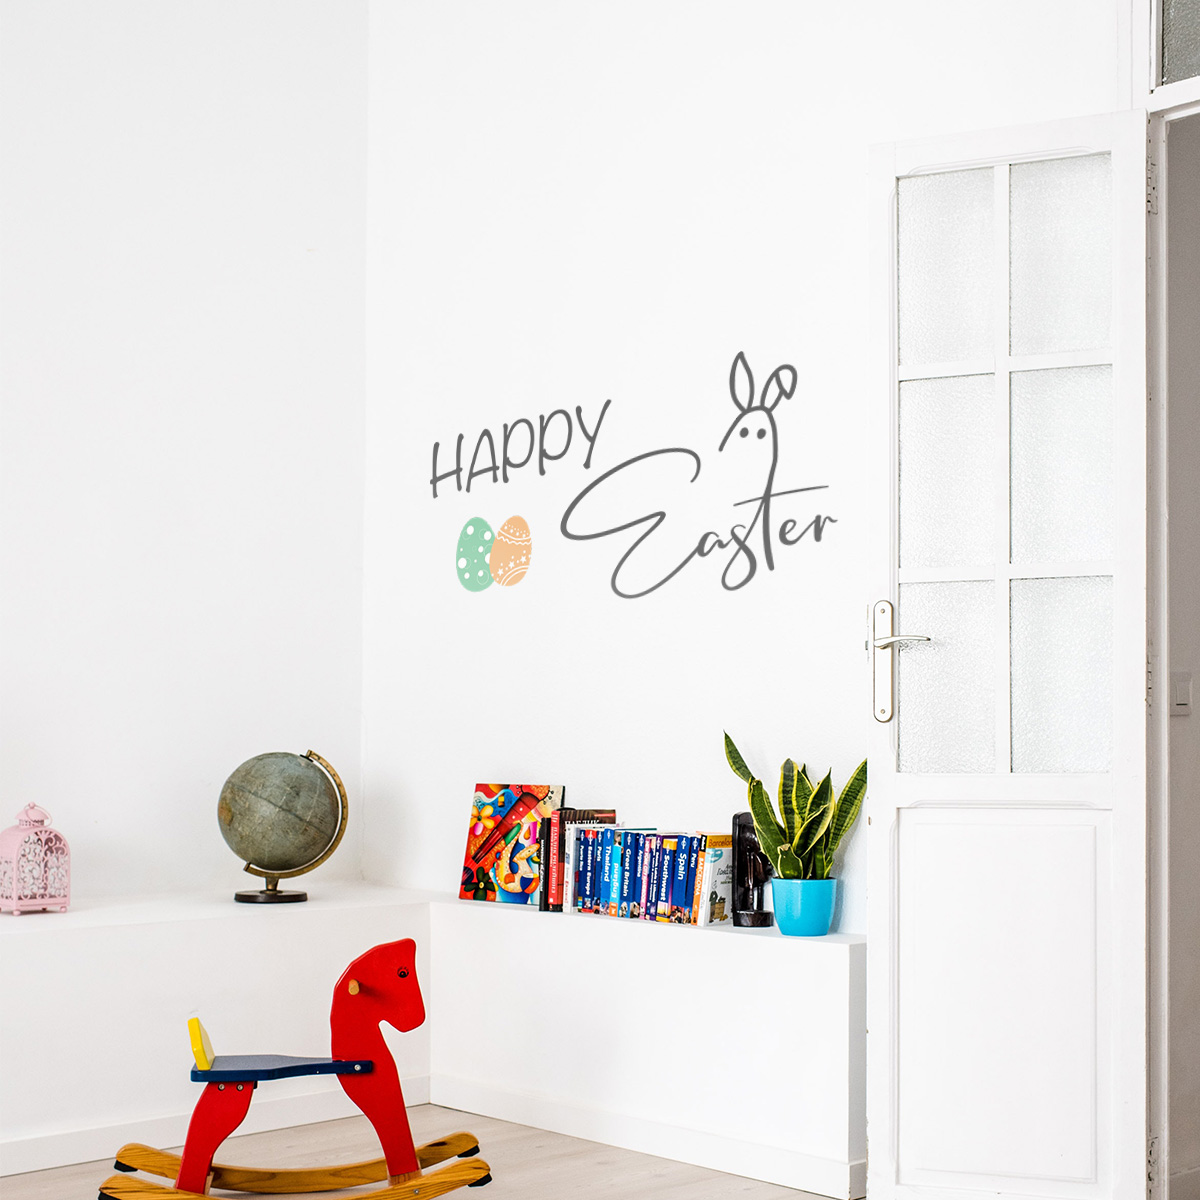 Decorative lettering wall sticker by CaptainText: happy easter